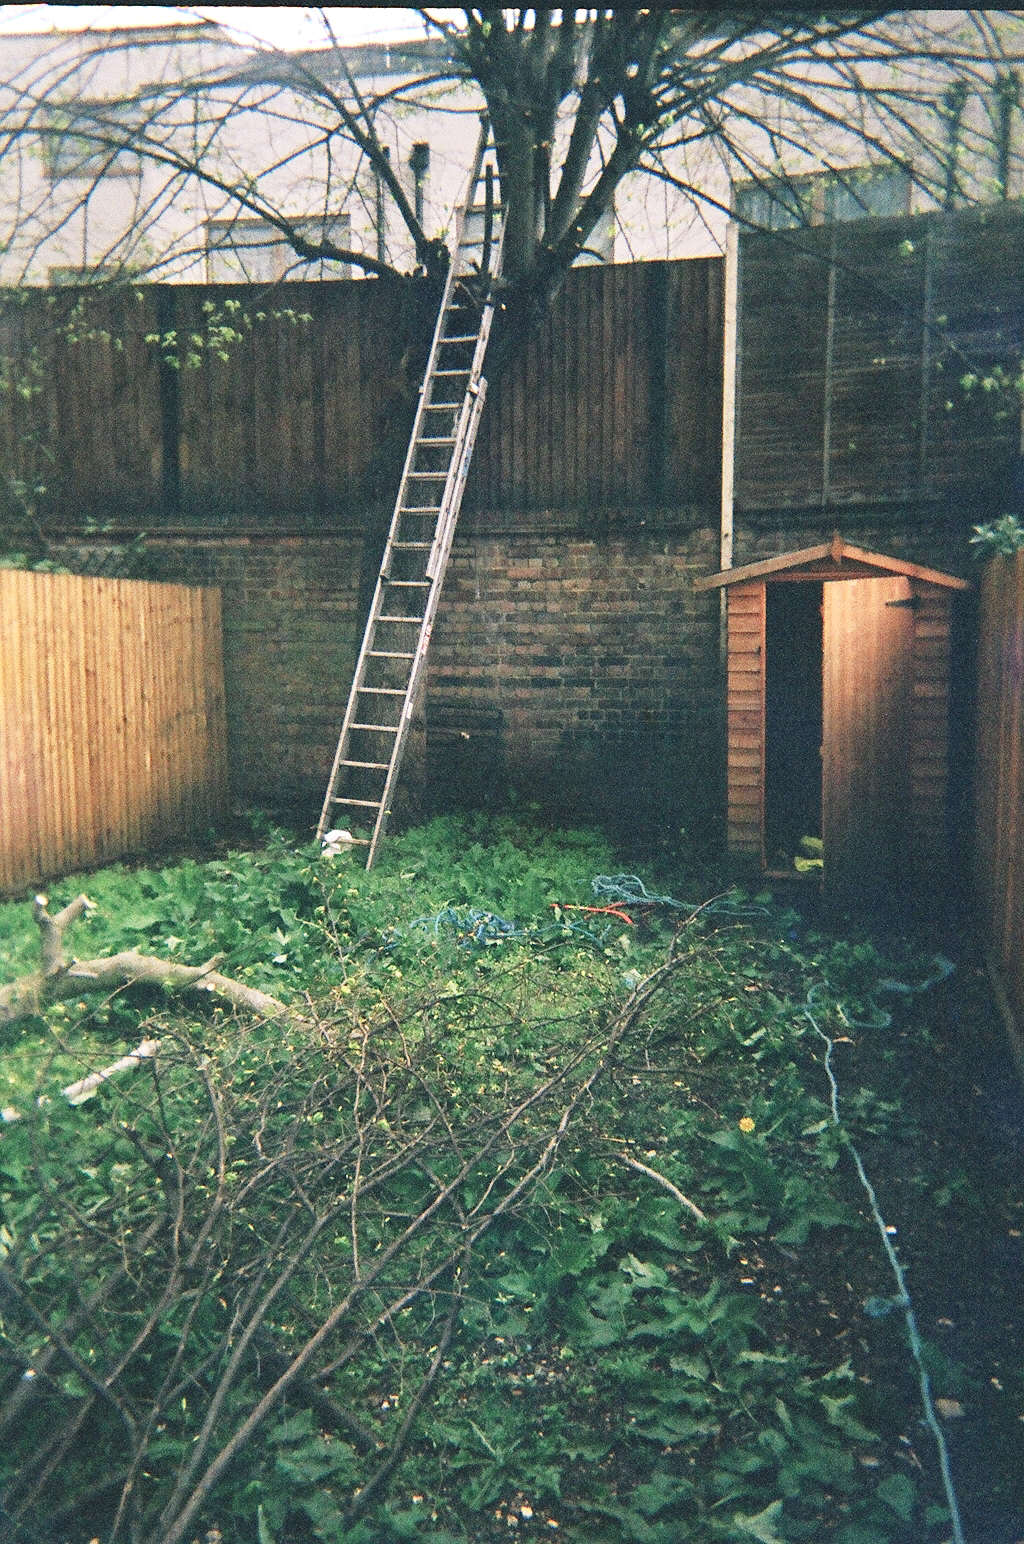 Professional ree work to increase daylight in the rear garden